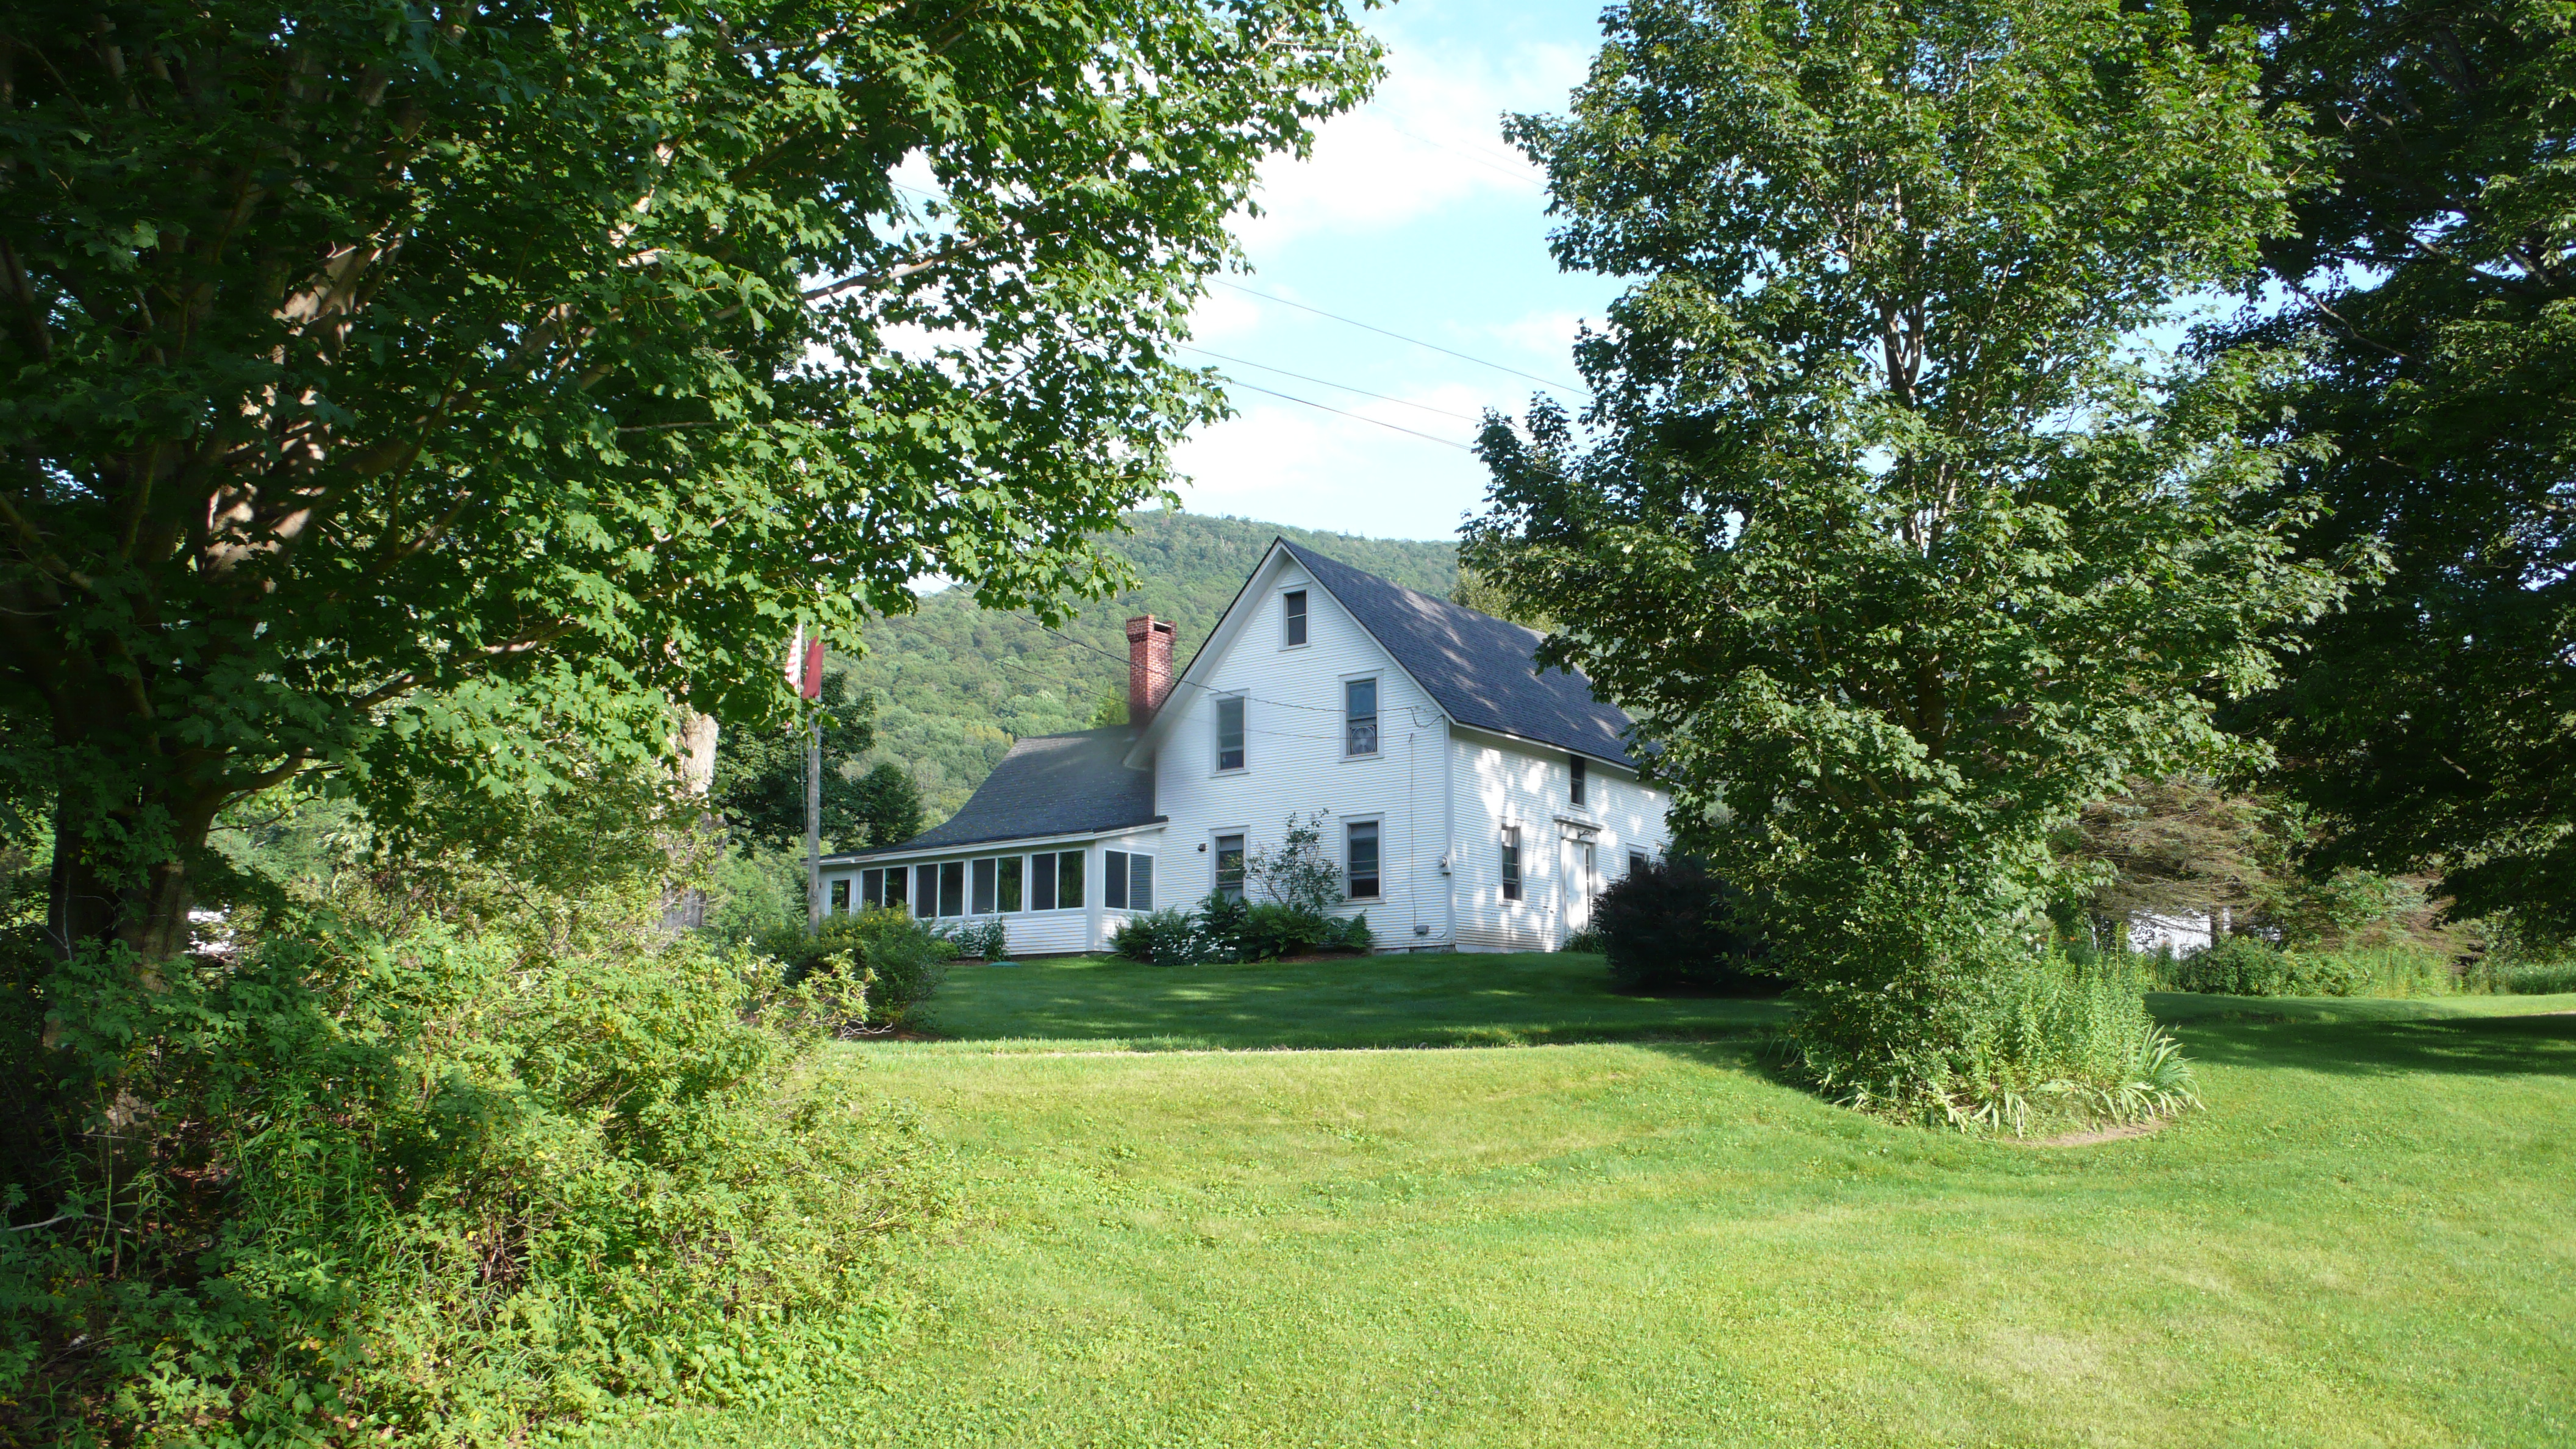 The vermont country house 5 bedroom 100 acre farm in the for Vermont country homes